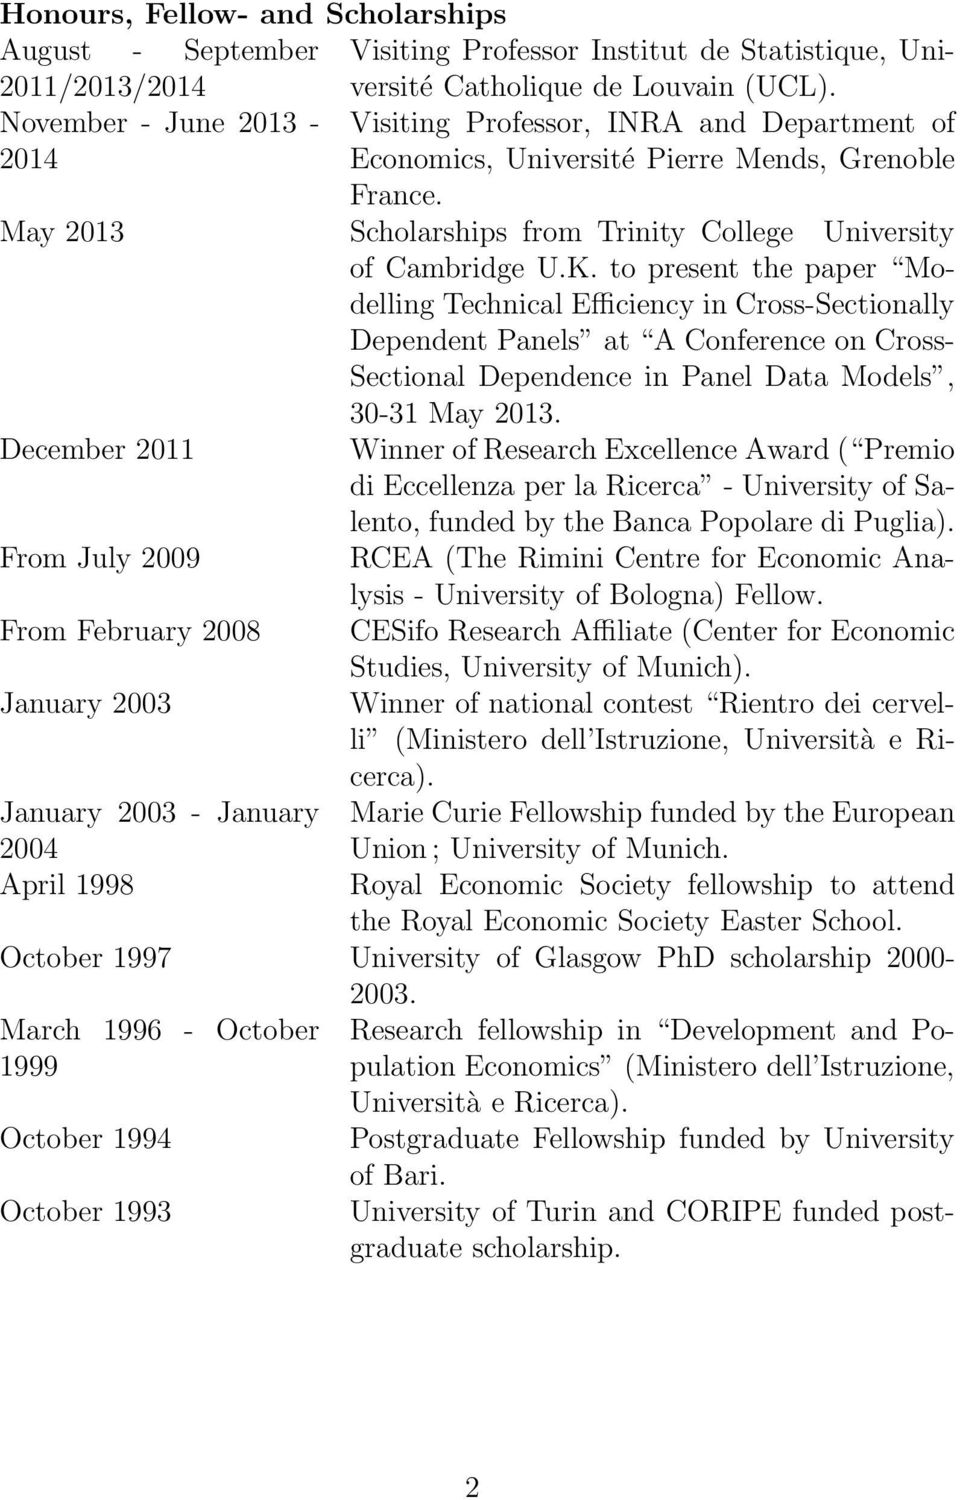 May 2013 Scholarships from Trinity College University of Cambridge U.K.